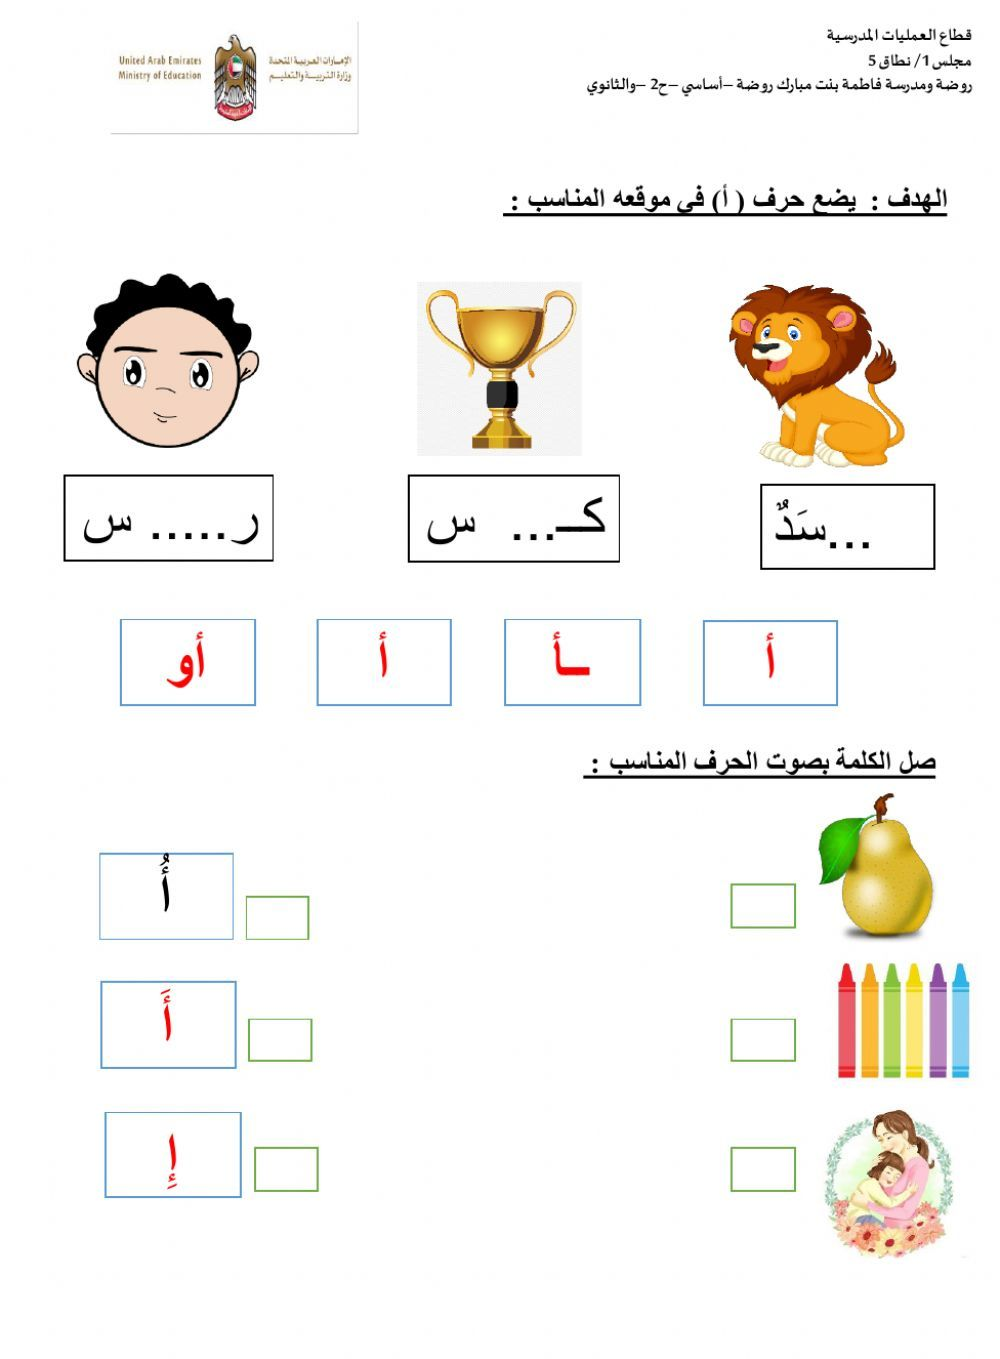 مهمة عمل Online Worksheet For الصف الاول You Can Do The Exercises Online Or Download The Worksheet As Pdf Arabic Alphabet For Kids Arabic Kids Learning Arabic